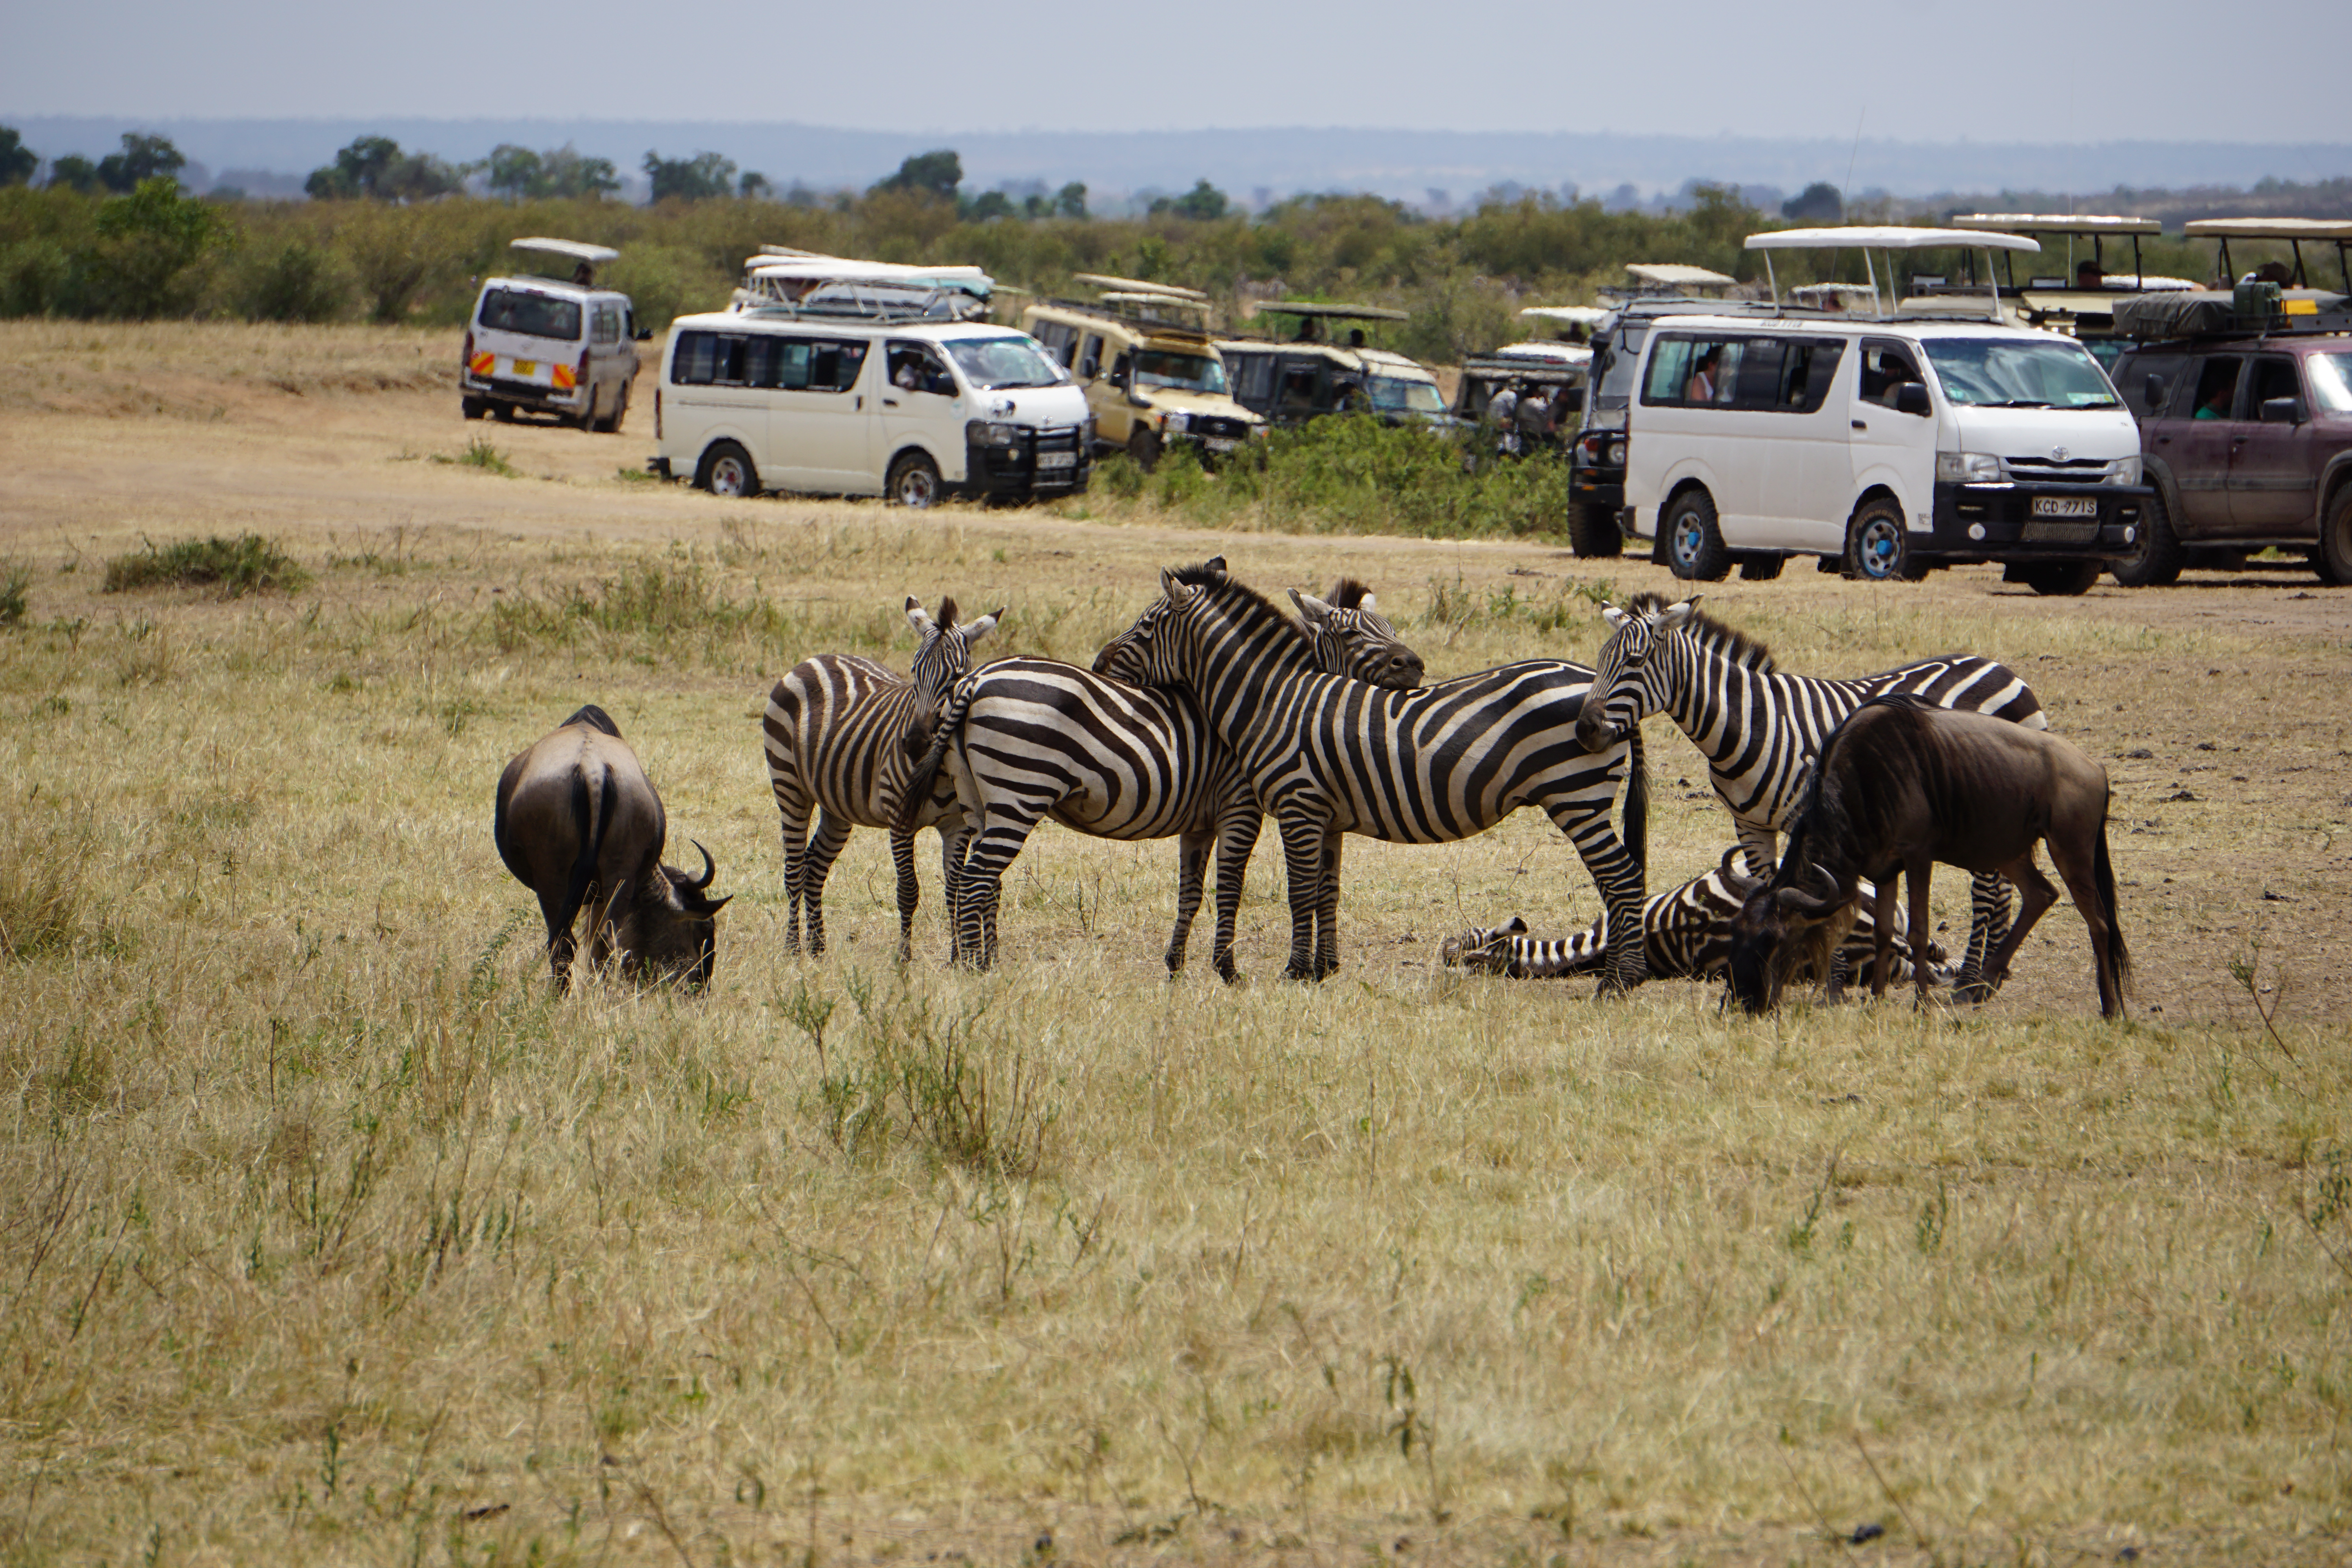 1a. Zebras and jeeps